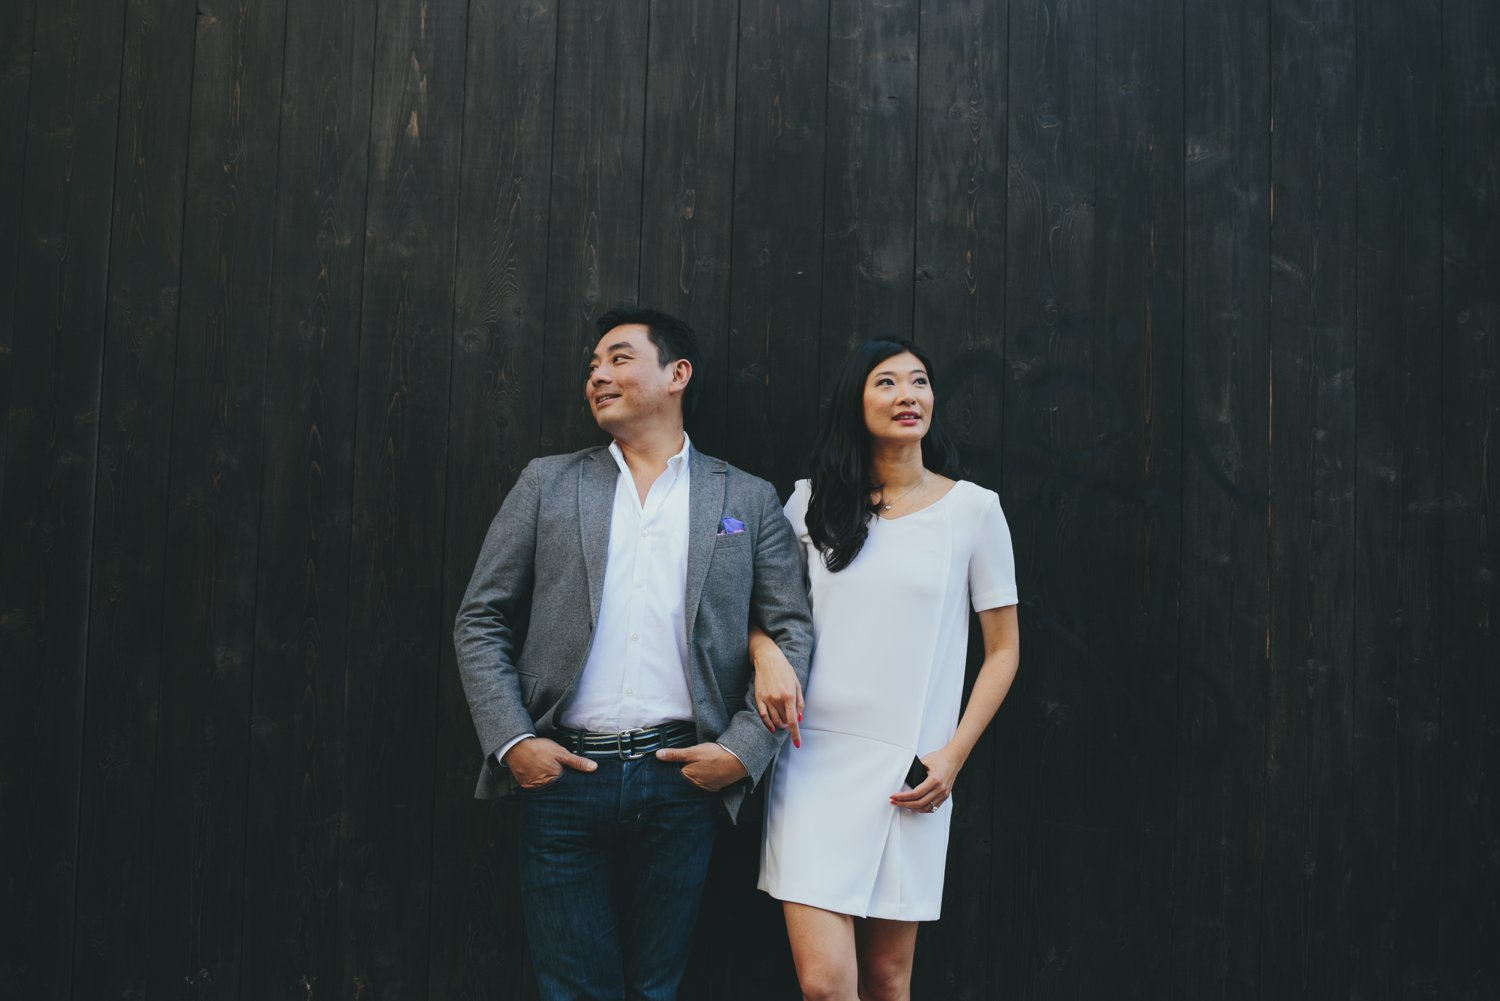 6NYC-NJ-ENGAGEMENT-PHOTOGRAPHY-BY-INTOTHESTORY-MOO-JAE.JPG